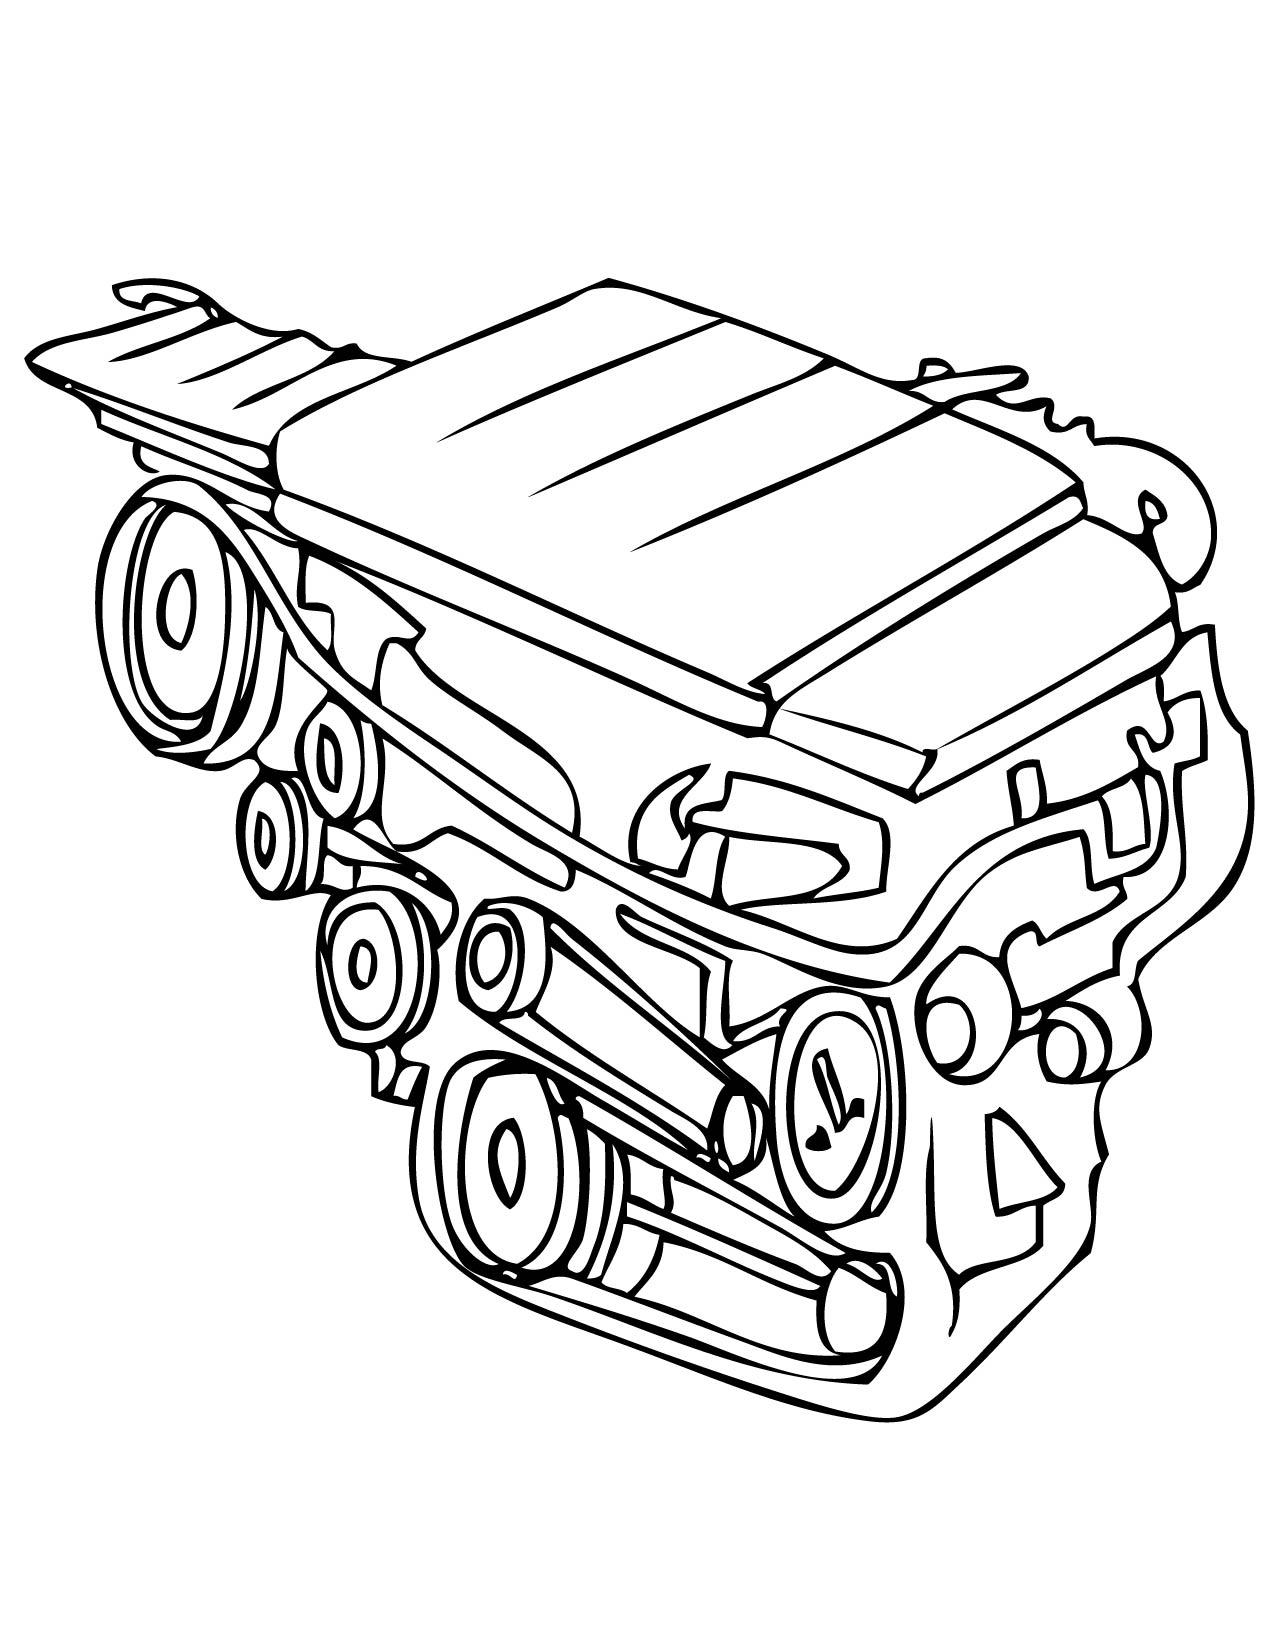 Car Parts Coloring Pages At Getdrawings